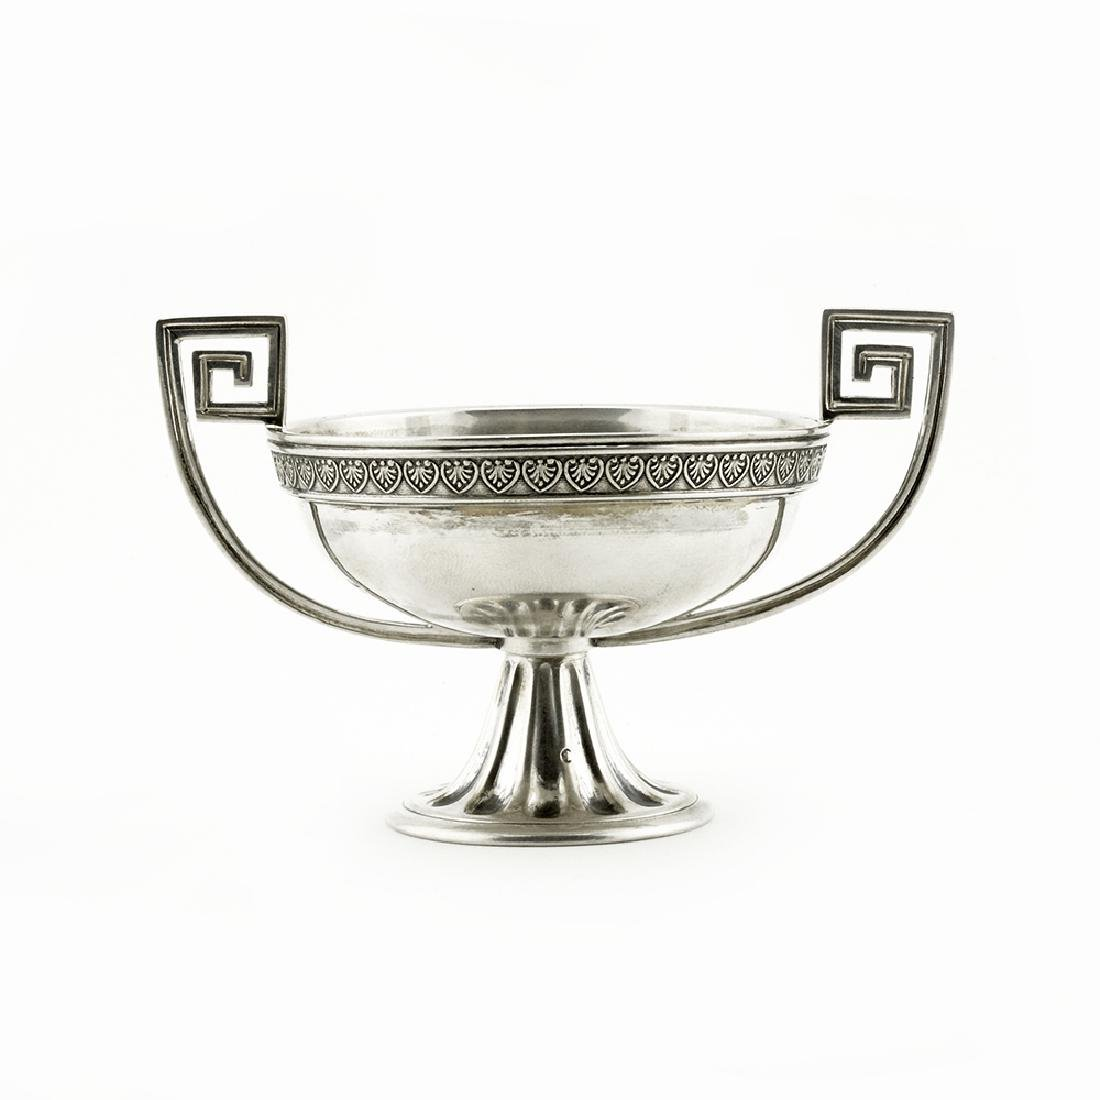 Faberge silver two-handled open salt